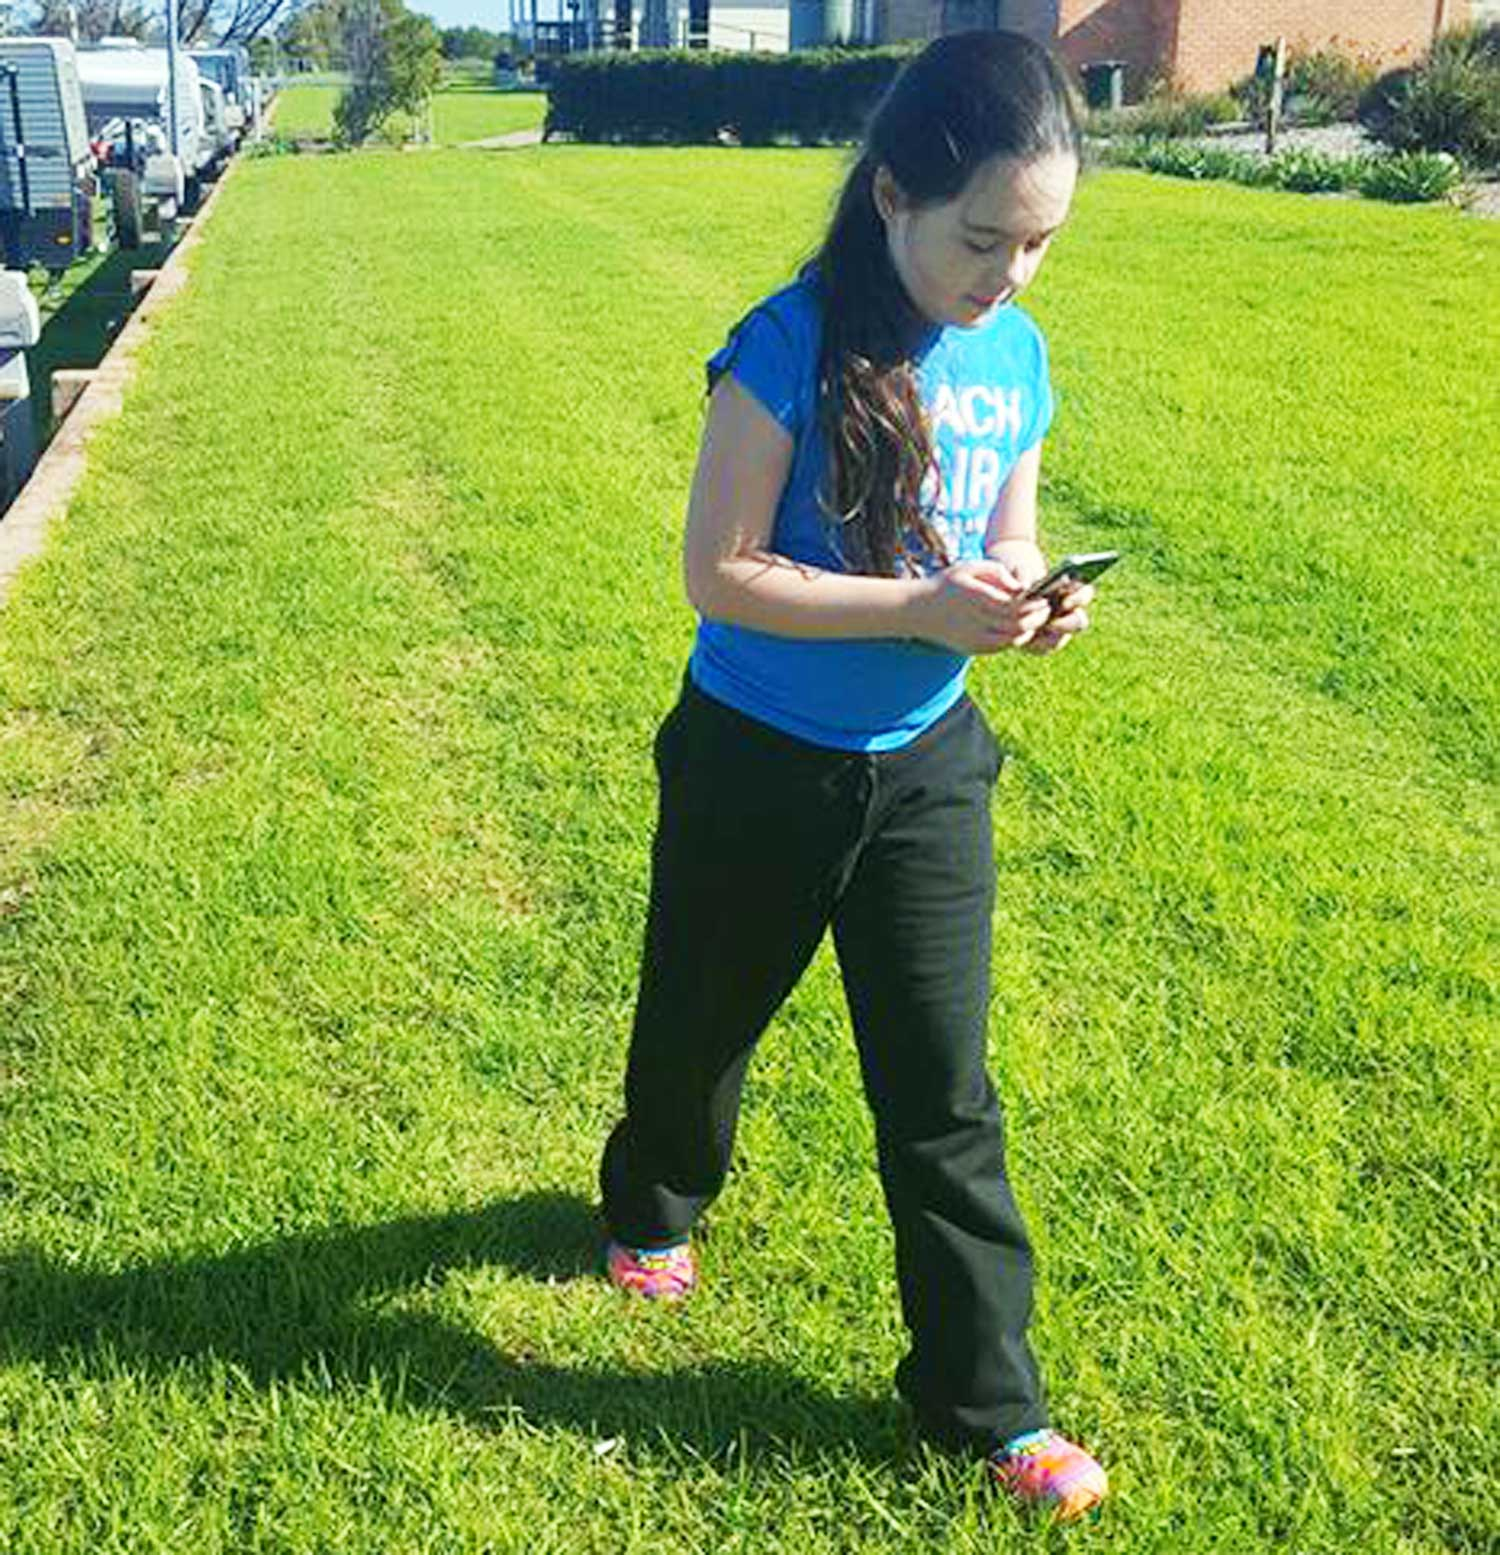 Tookii things to do with kids playing pokemon go one of the outdoor activities for kids